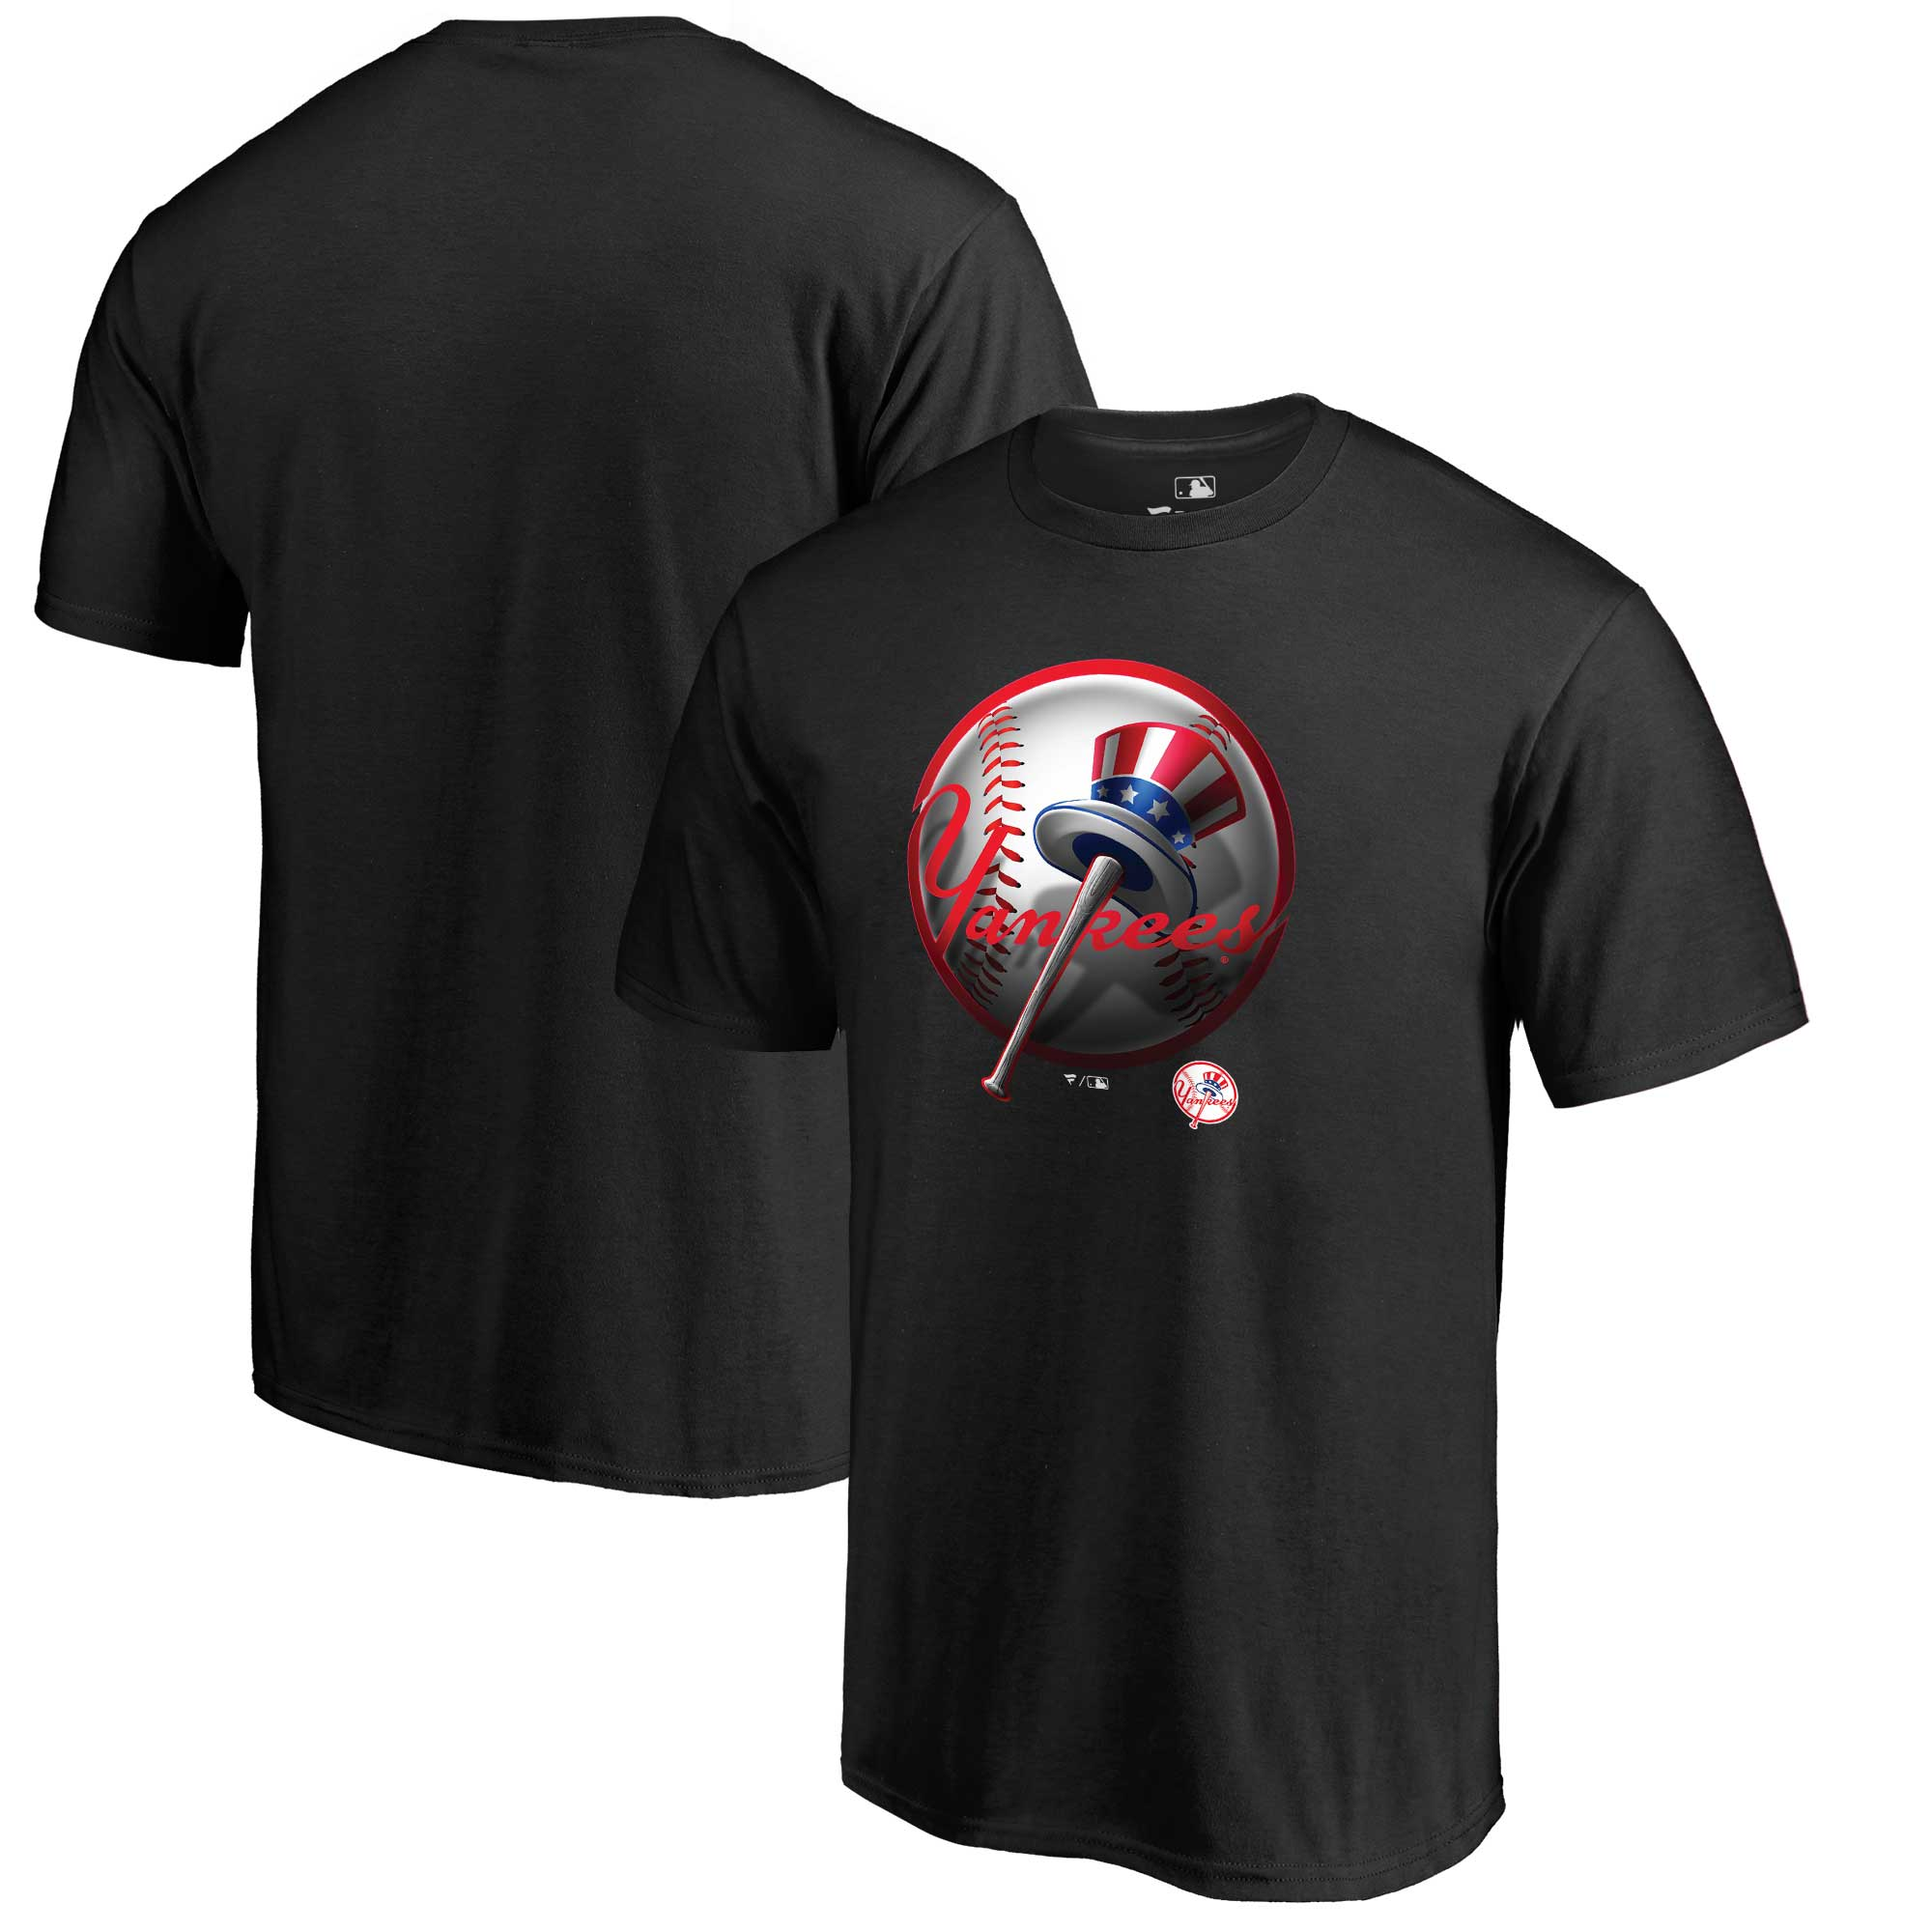 New York Yankees Fanatics Branded Midnight Mascot T-Shirt - Black